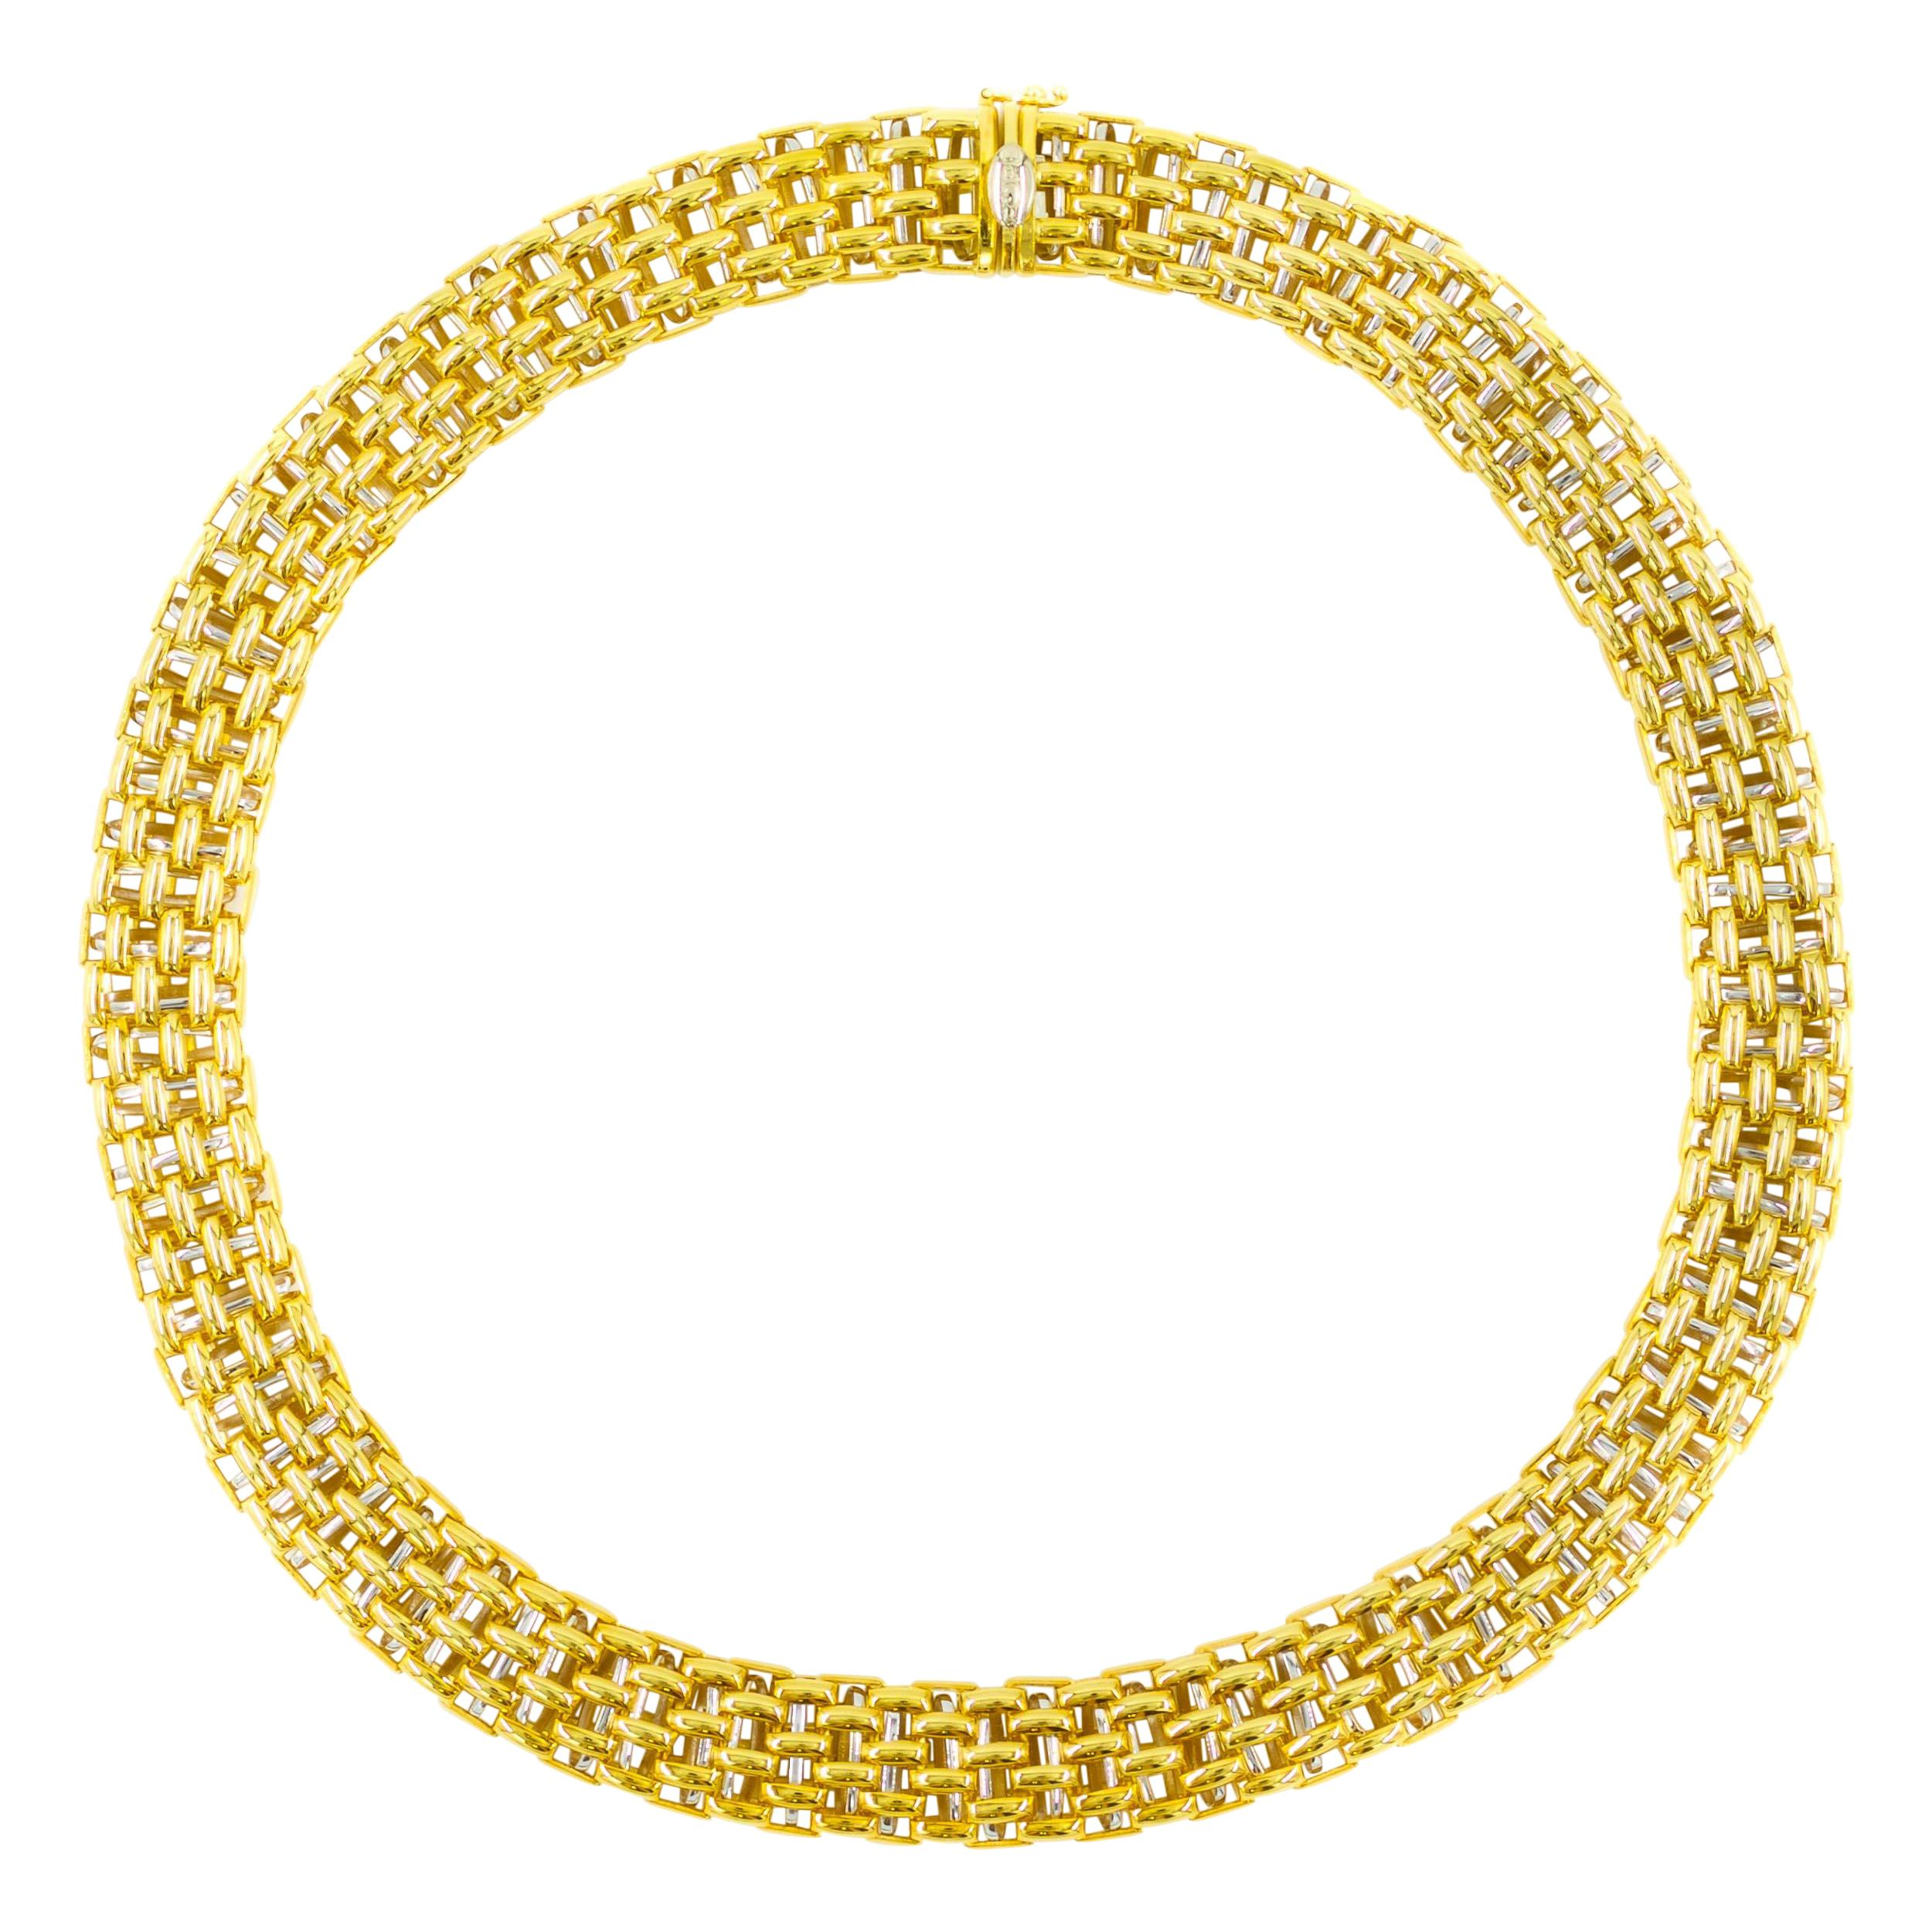 Very Fine 18k Yellow and White Gold Flexible Link Necklace by FOPE